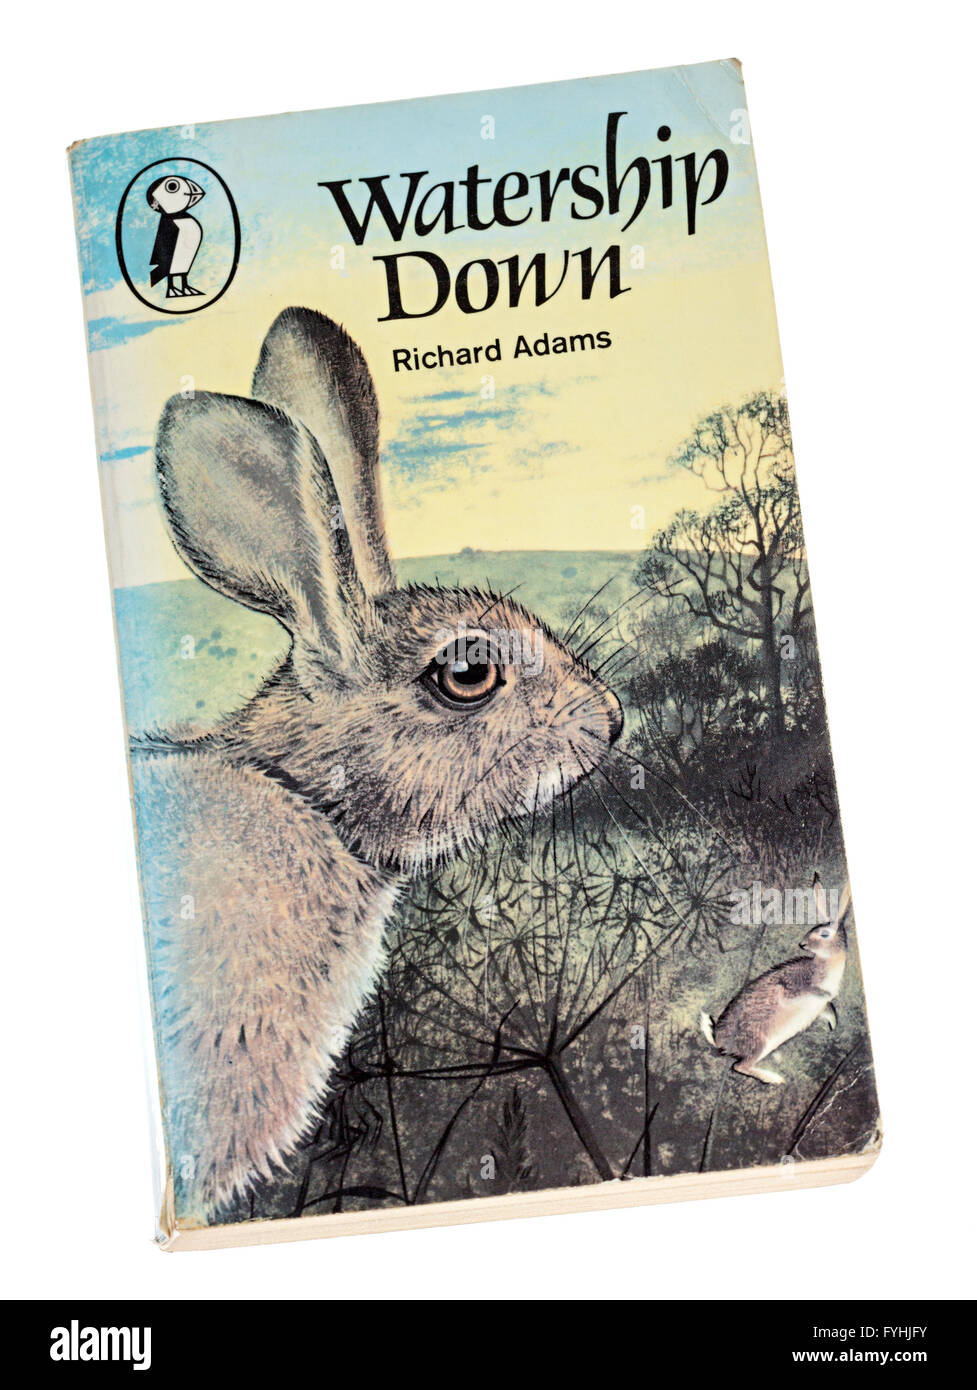 Richard Adams Watership Down paperback book cover - Stock Image